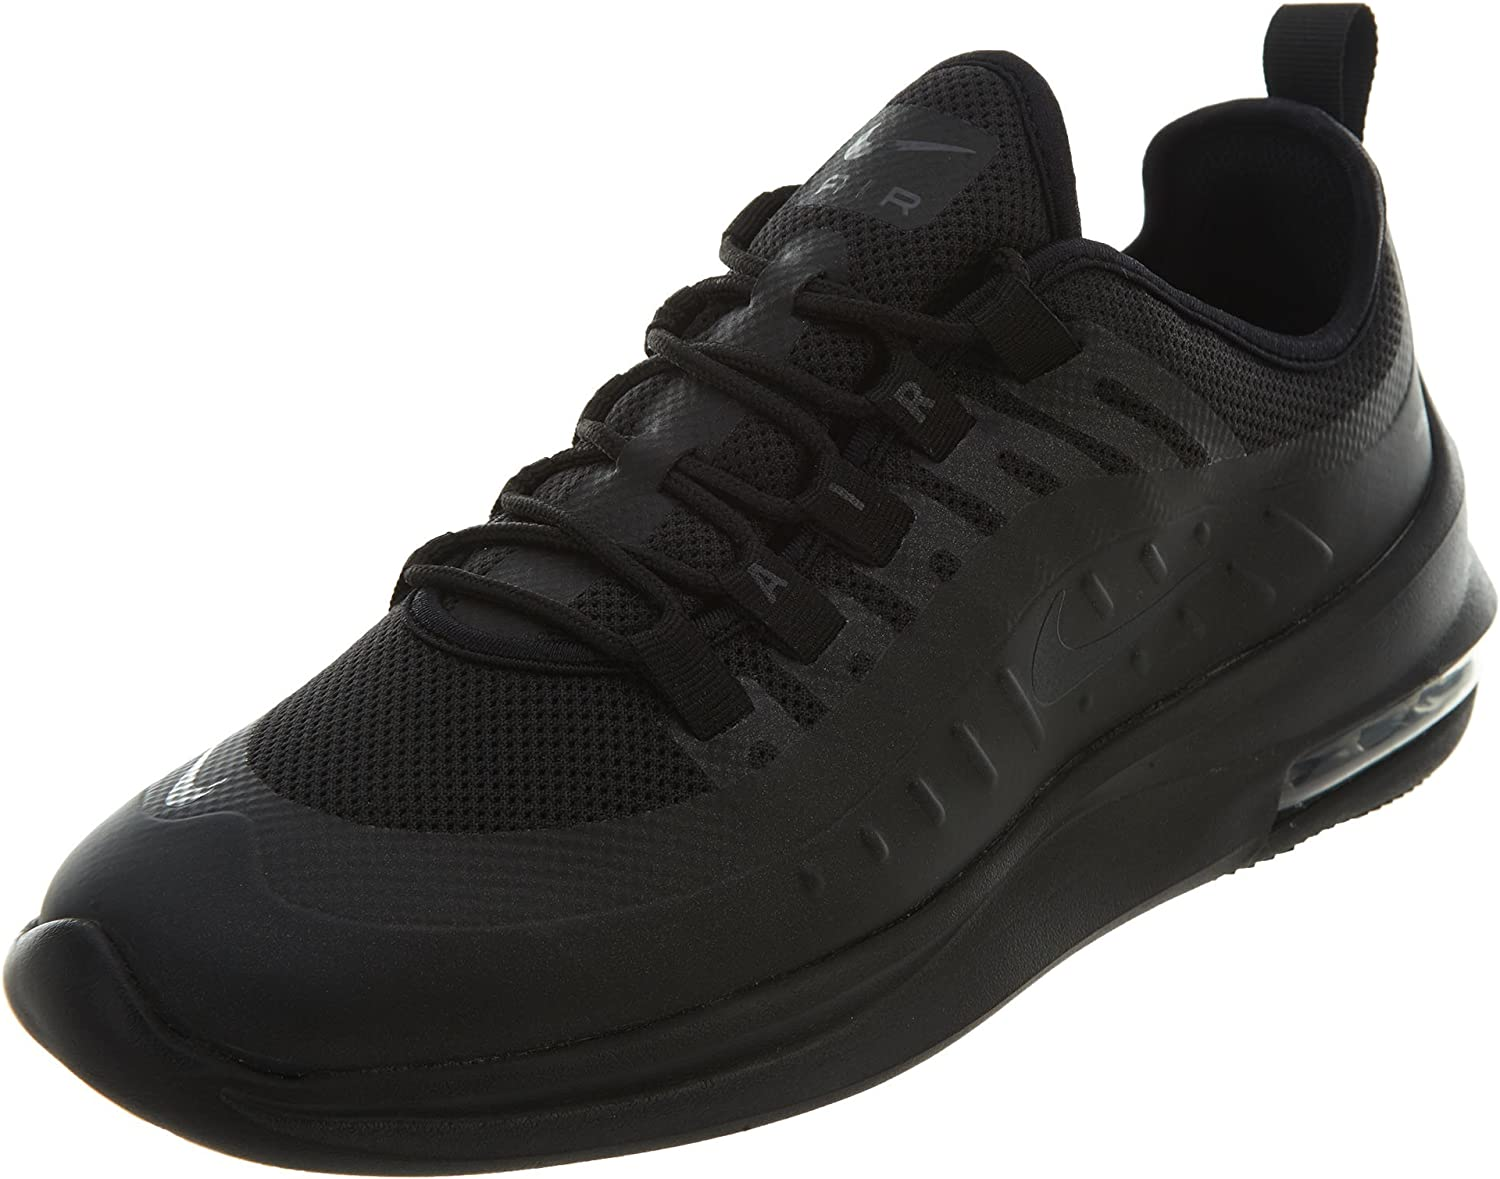 Nike Air Max Axis Mens Style: AA2146-006 Size: 9.5 Black/Anthracite